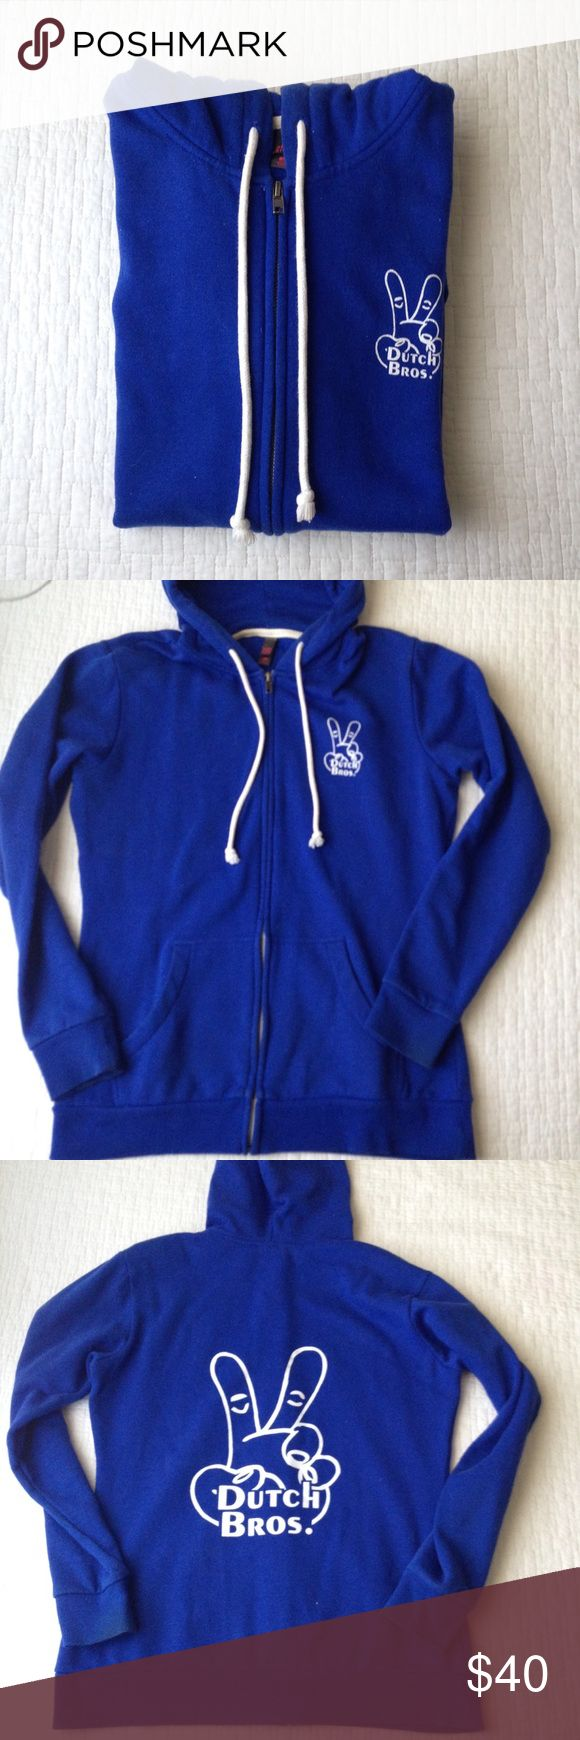 Dutch Bros Zip up Hoodie♡ Dutch bros zip up hoodie. Worn a couple of times but looks practically new! In super great condition. Ready to be worn by a lovely barista or die hard Dutch Bros fan♡ in size large but fits medium as well. Dutch bros  Tops Sweatshirts & Hoodies